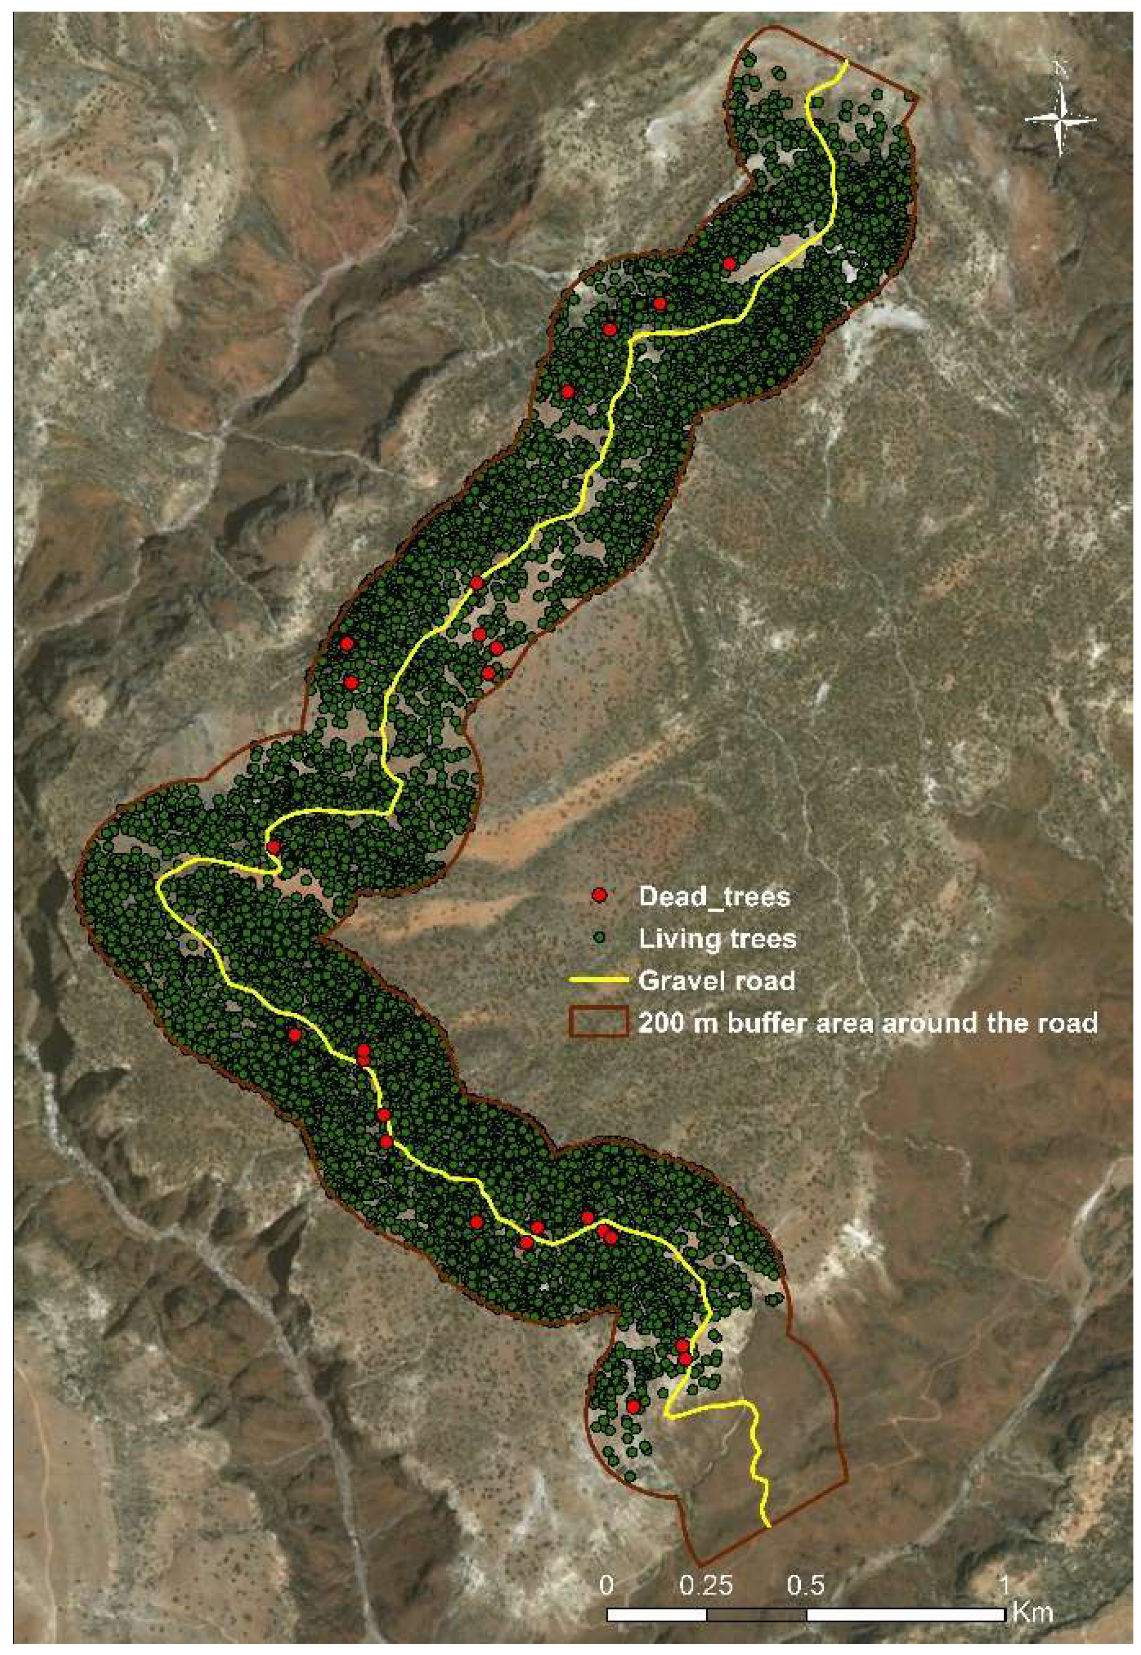 Sustainability Free Full Text Sustainable Land Use Management Needed To Conserve The Dragon S Blood Tree Of Socotra Island A Vulnerable Endemic Umbrella Species Html